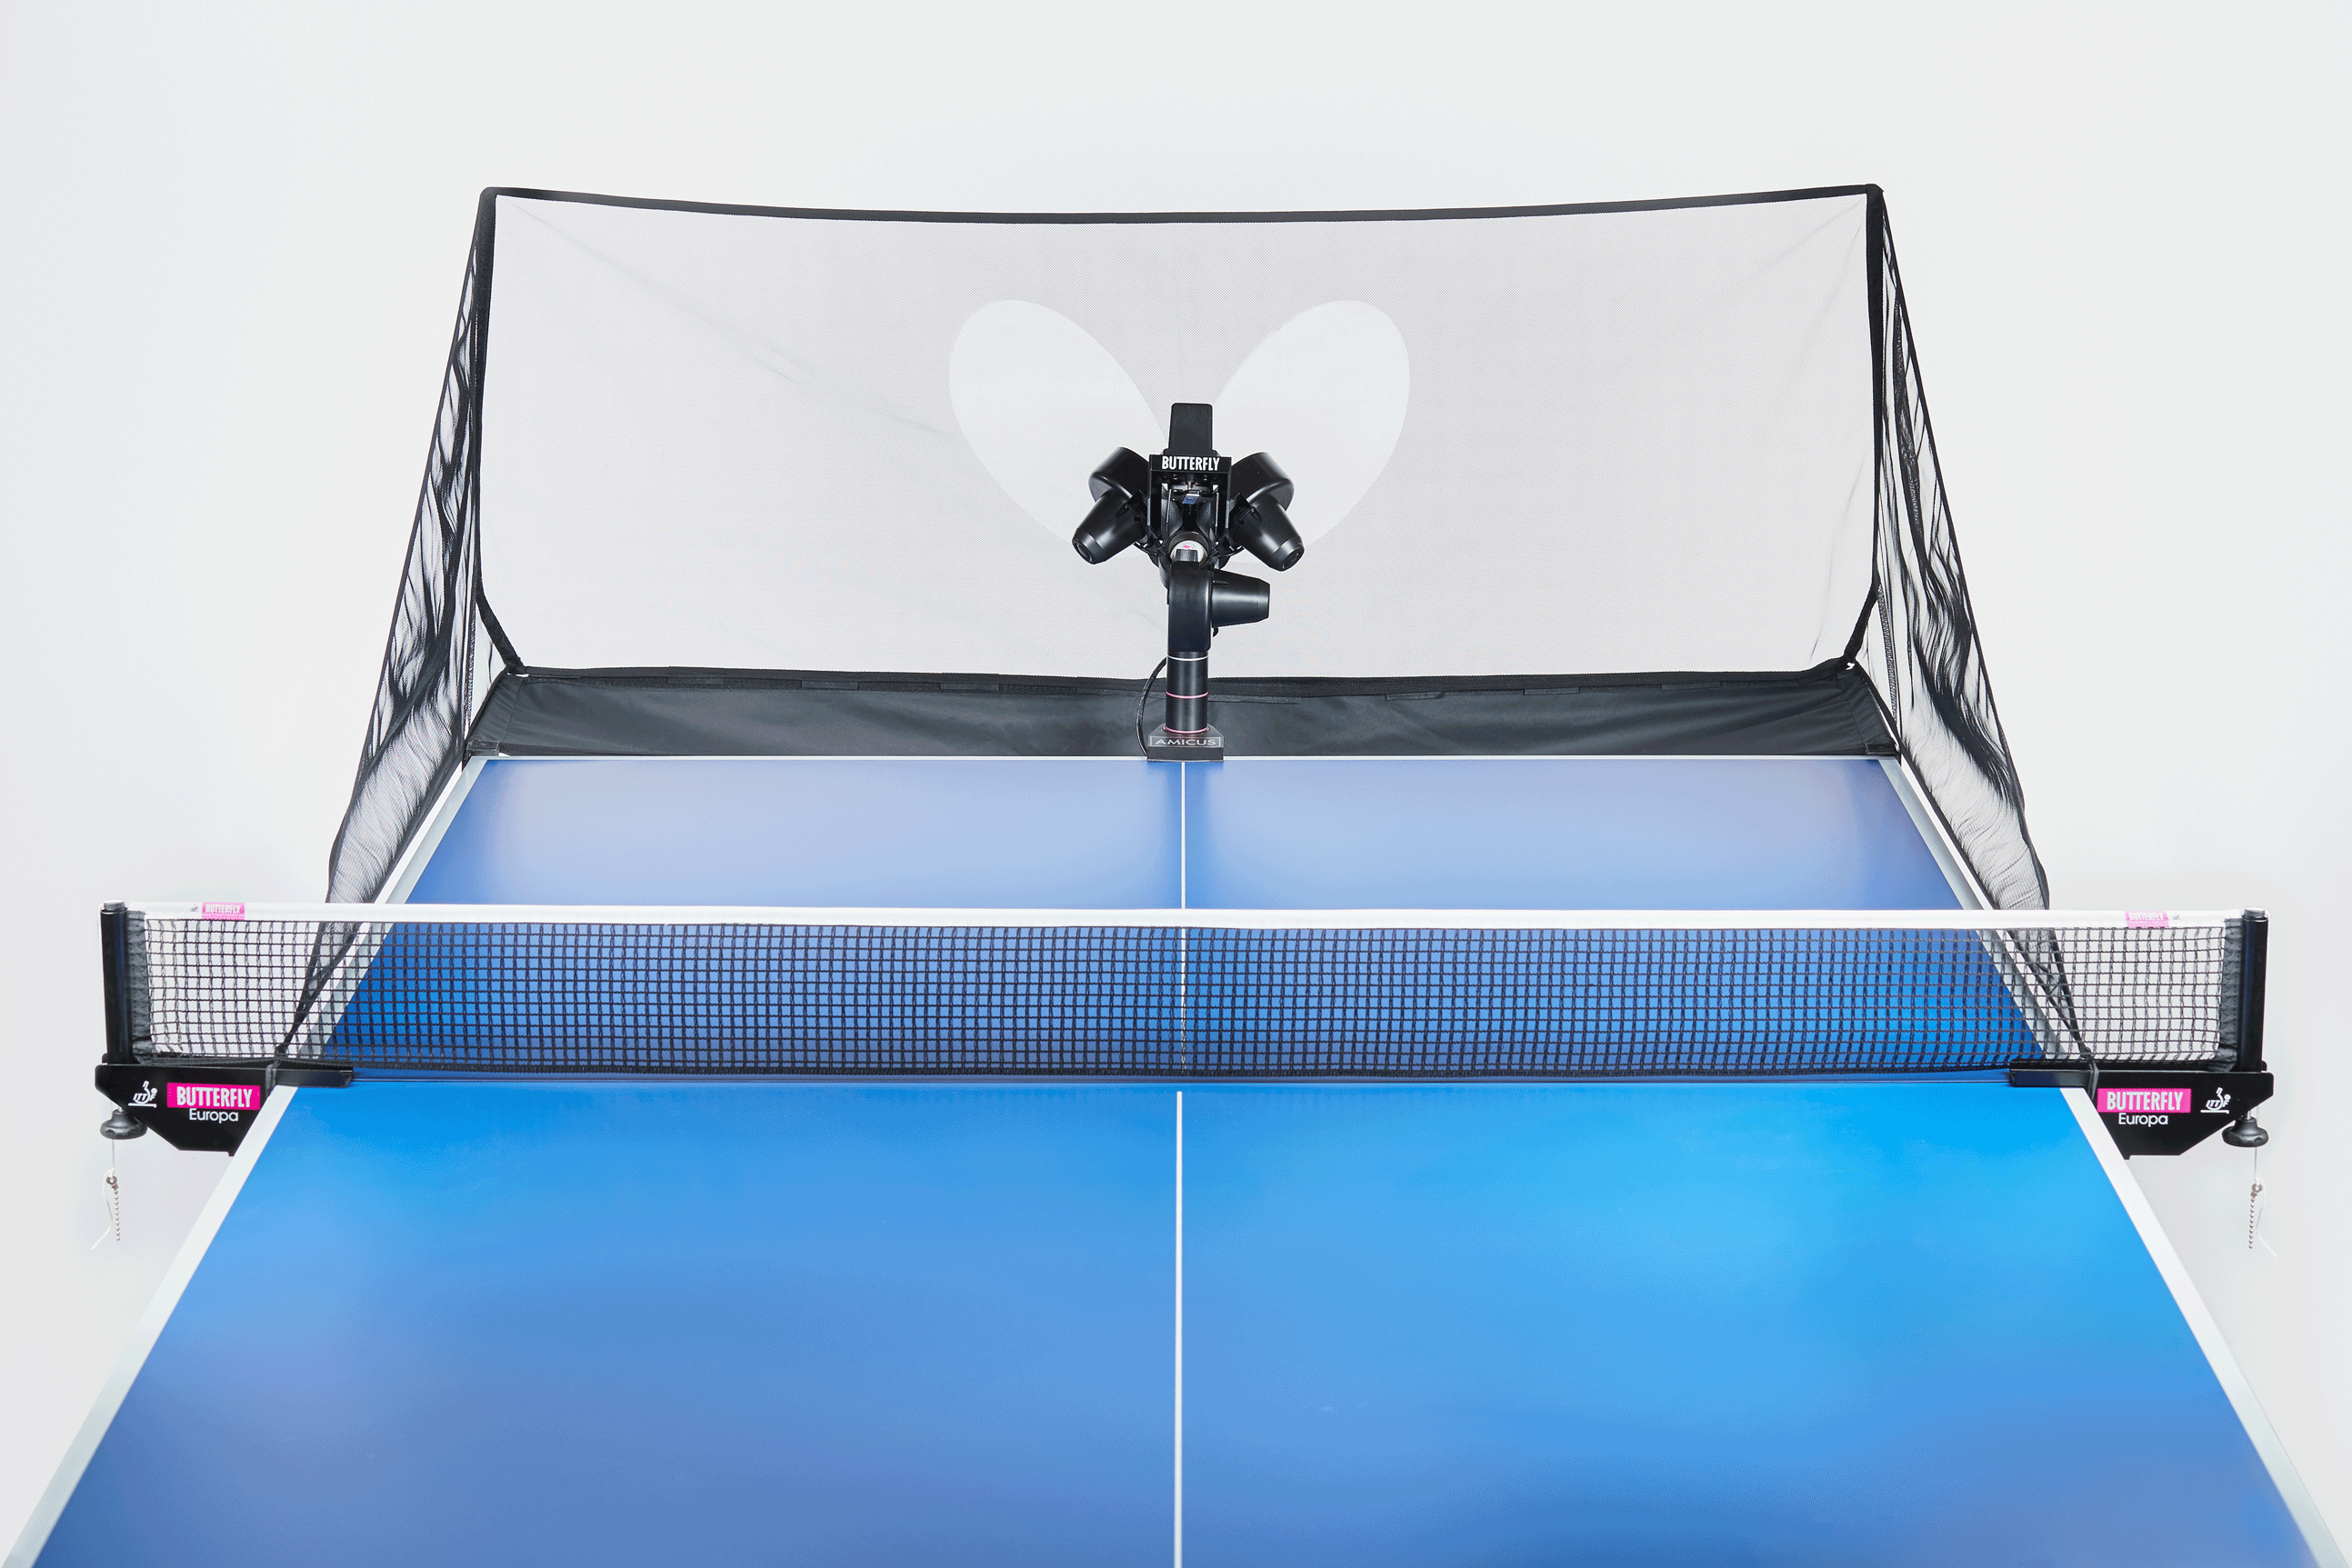 tennis moreview butterfly amicus start table lightbox amtisch